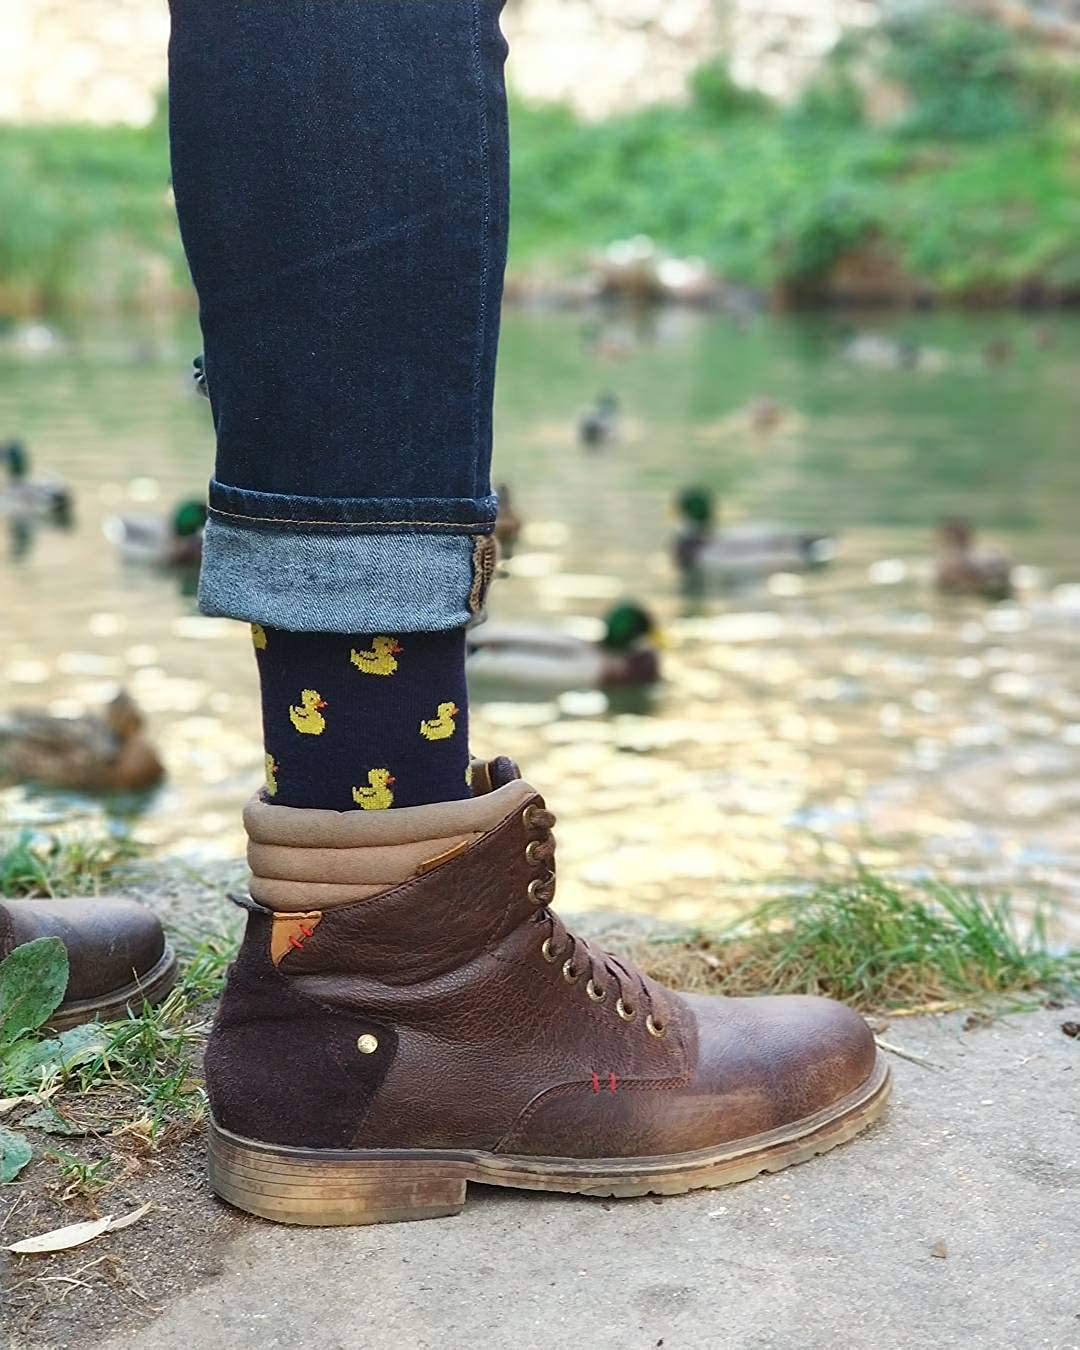 Roits Calcetines Patitos Azul 36-40 - Calcetines Originales Mujer ...